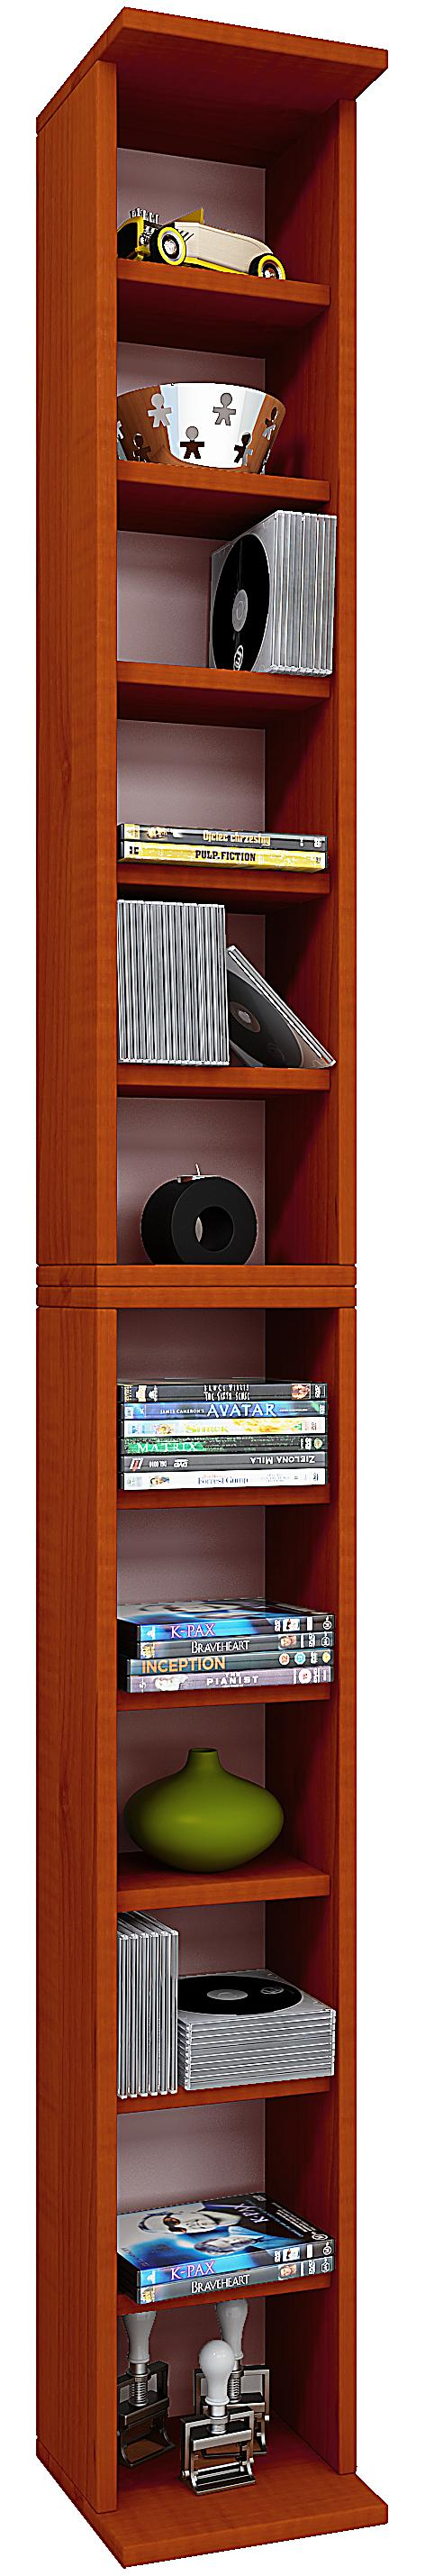 vcm regal dvd cd rack m bel aufbewahrung holzregal standregal m bel anbauprogramm bigol farbe. Black Bedroom Furniture Sets. Home Design Ideas